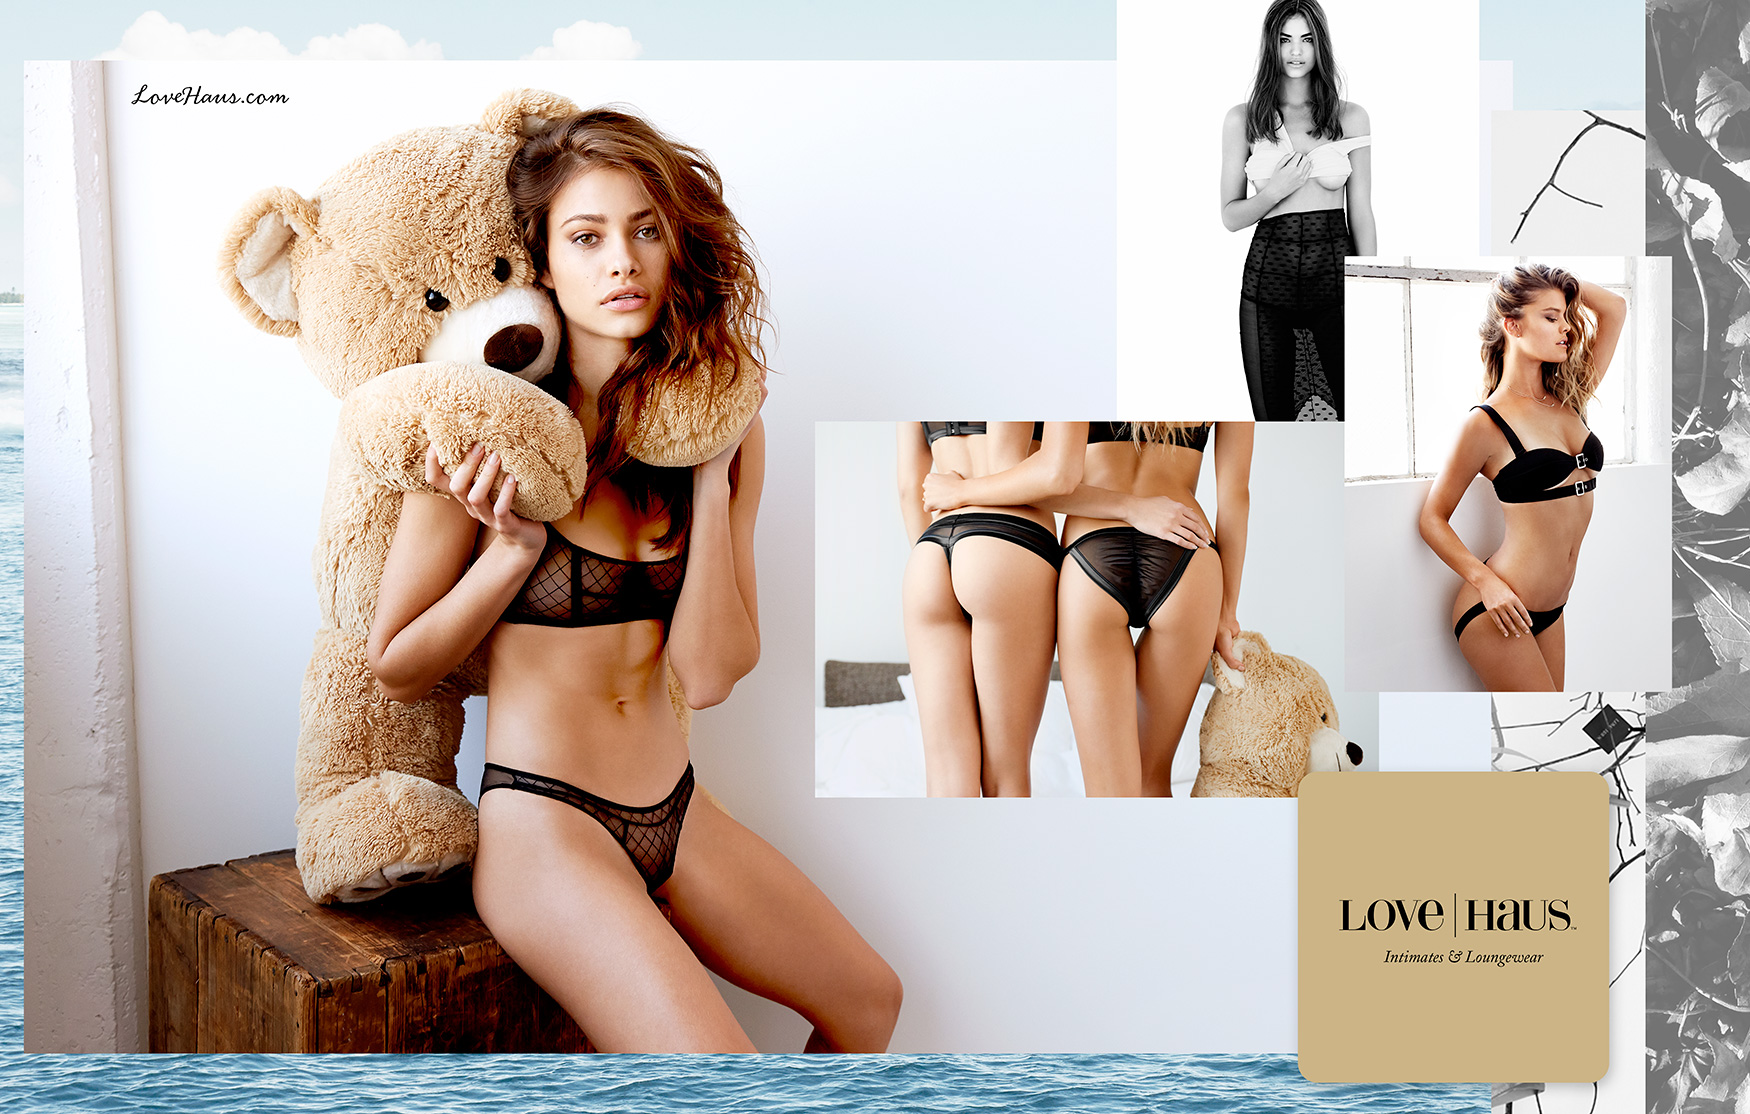 From left to right: Yara K (Wilhelmina), Robin Marjolein (IMG), and Nina Agdal (Elite) for Love Haus